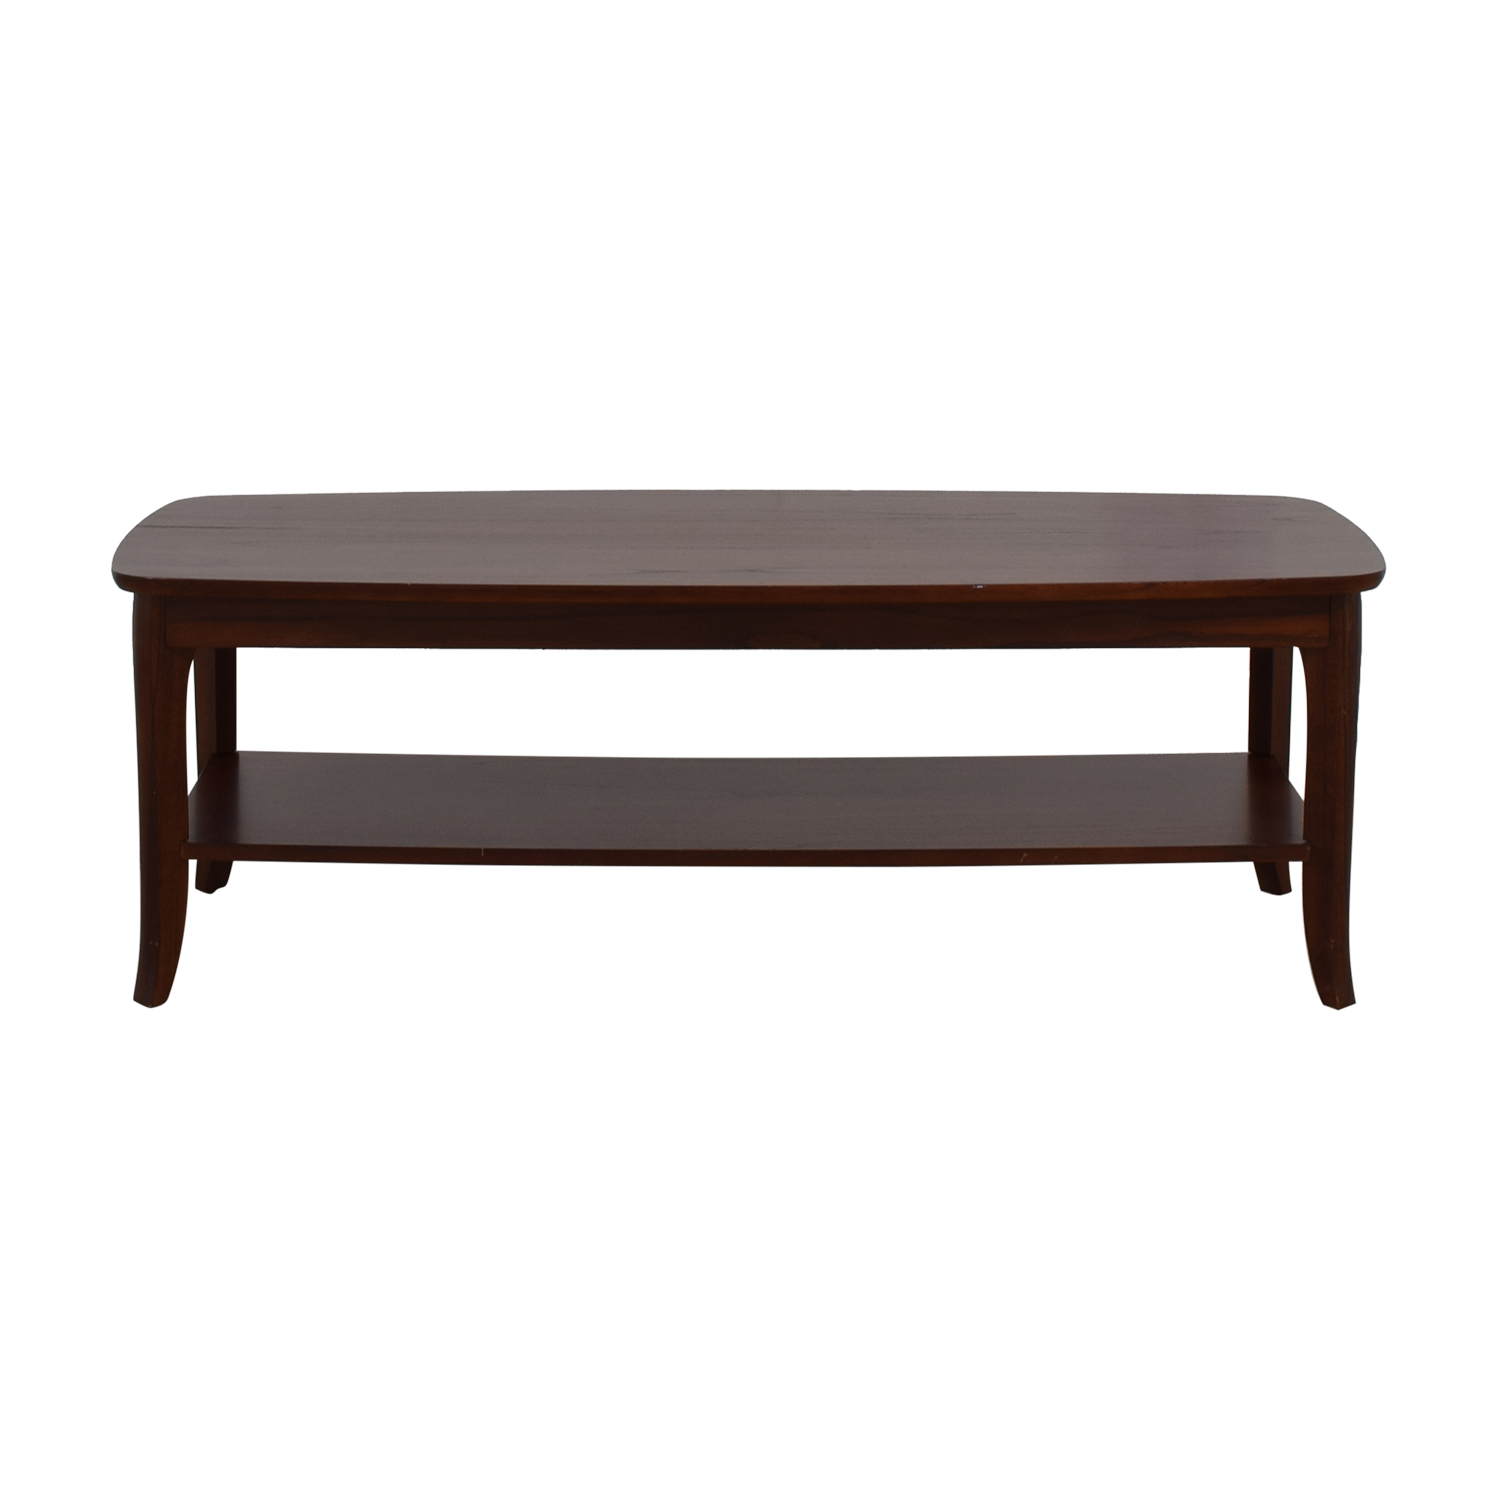 Brilliant 52 Off Pottery Barn Pottery Barn Chloe Wood Coffee Table Tables Machost Co Dining Chair Design Ideas Machostcouk